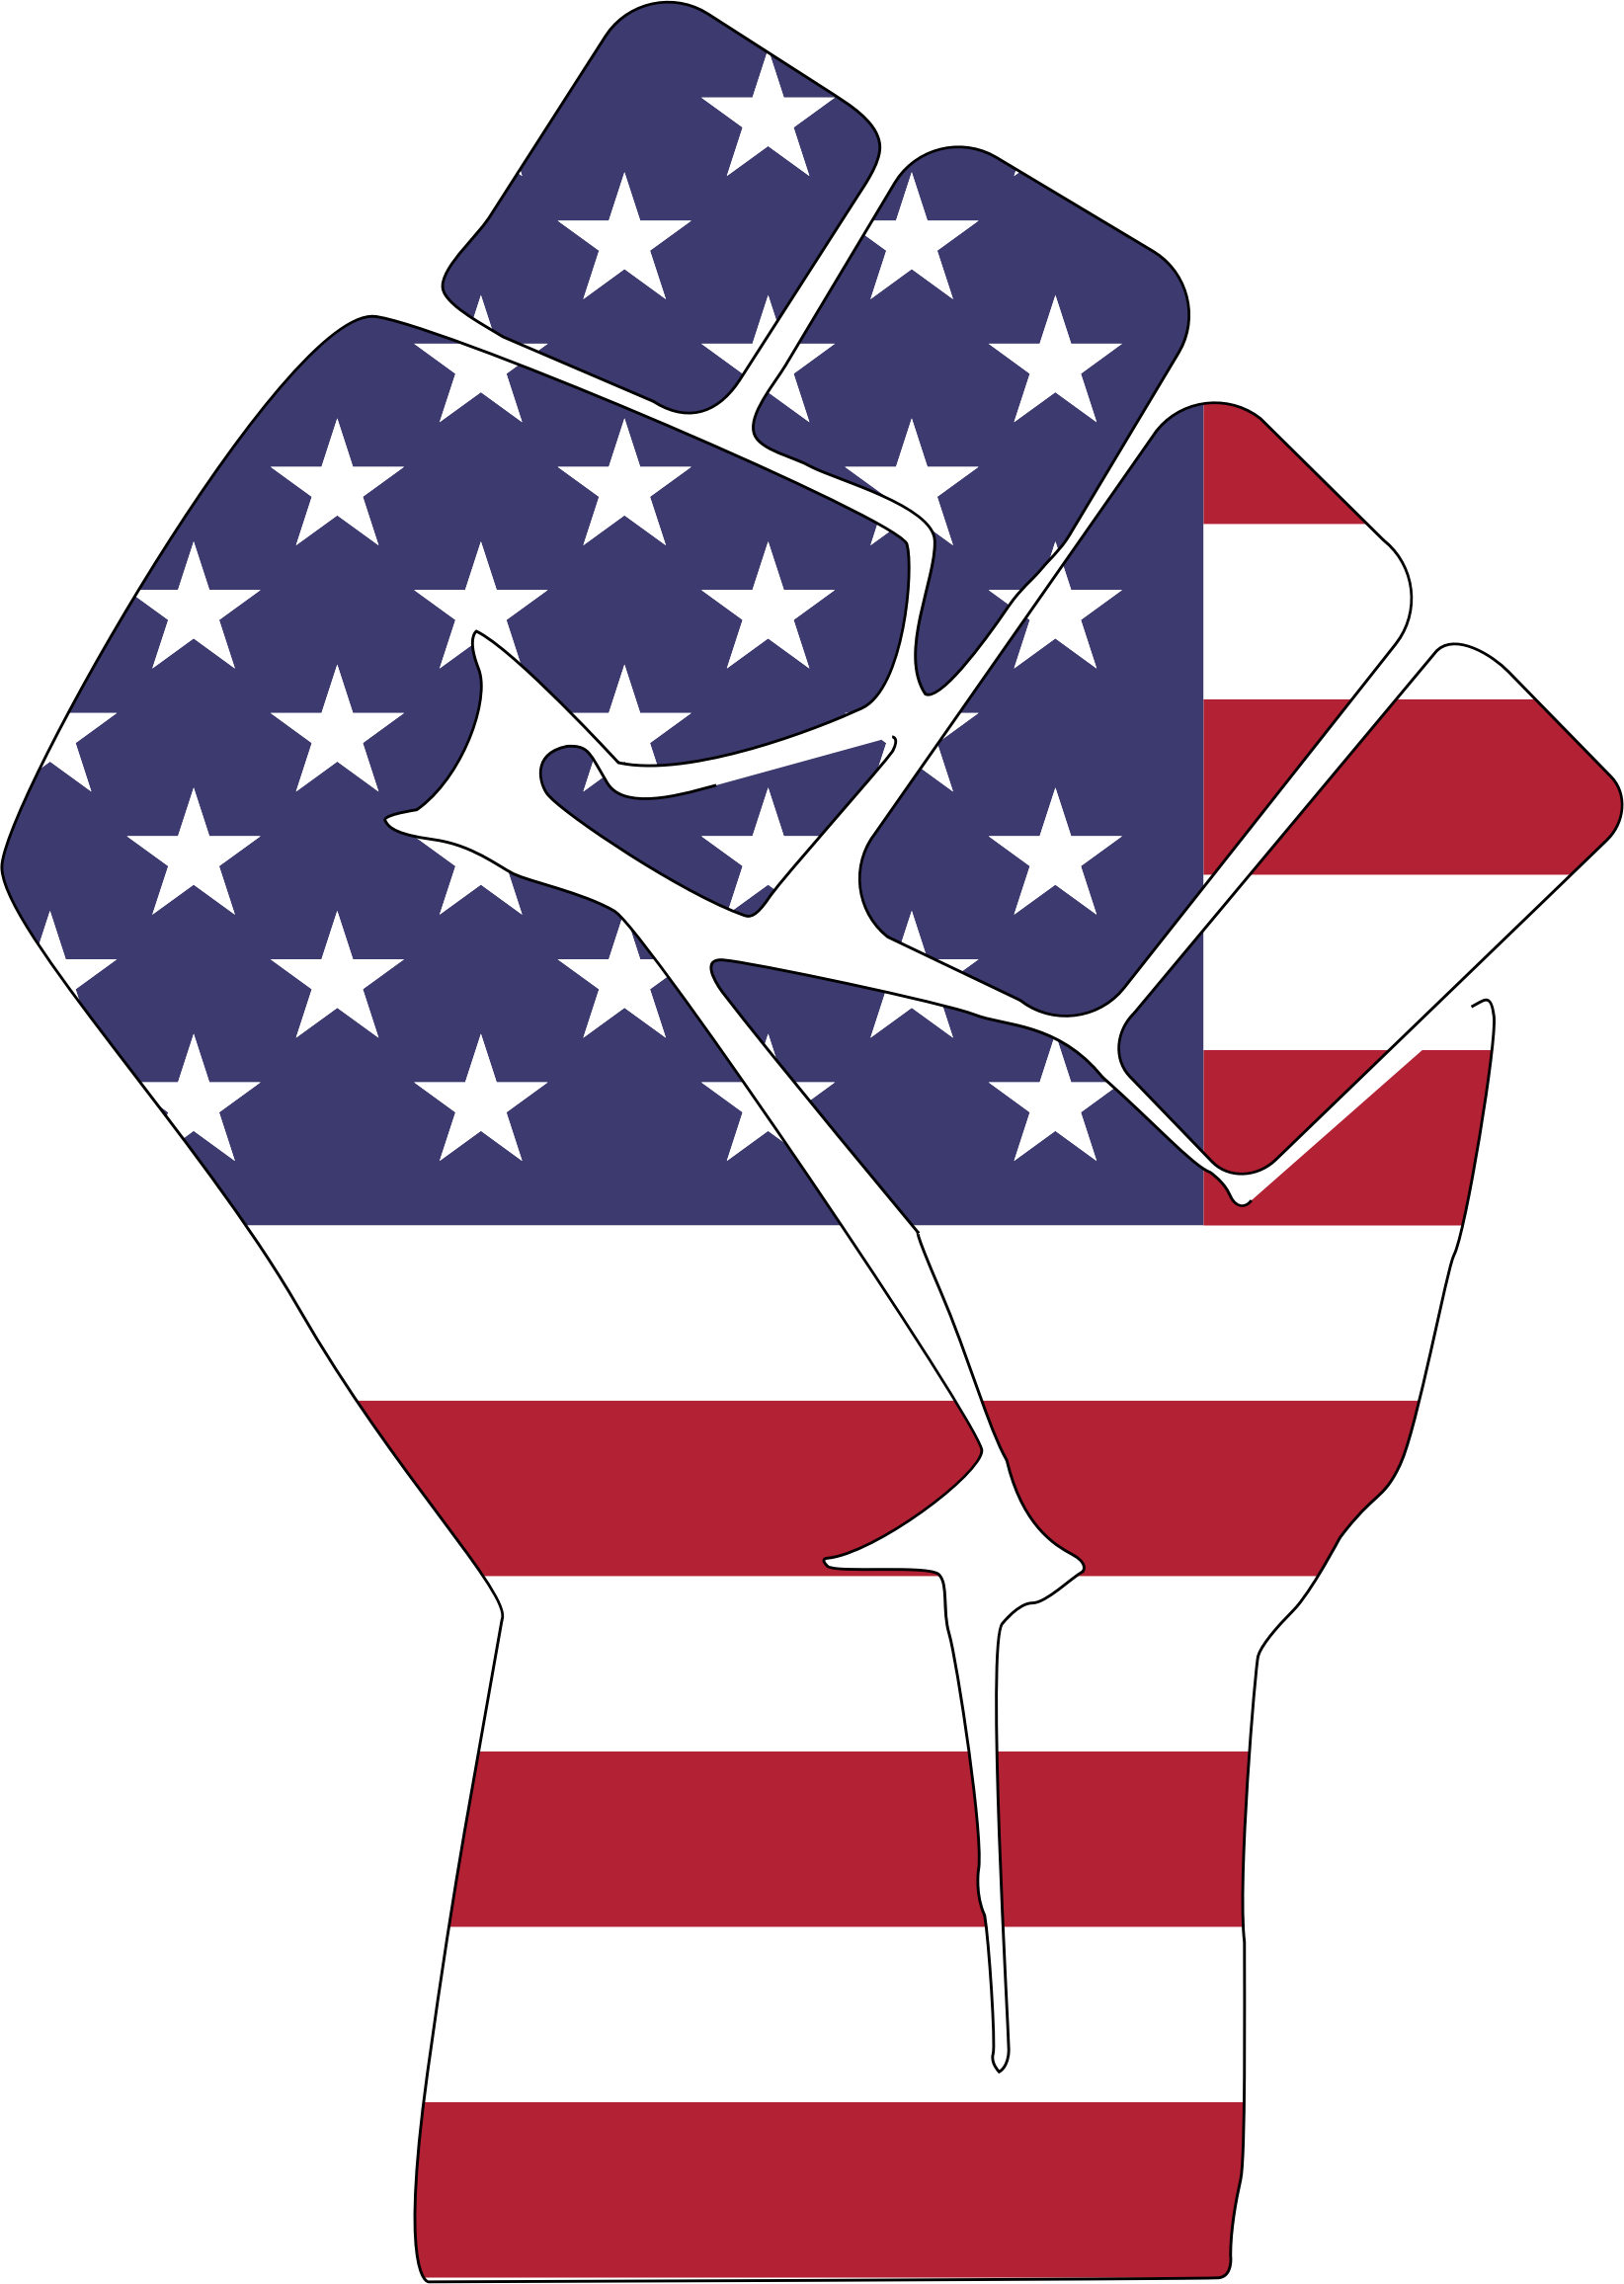 American Flag Fist With Stroke by GDJ